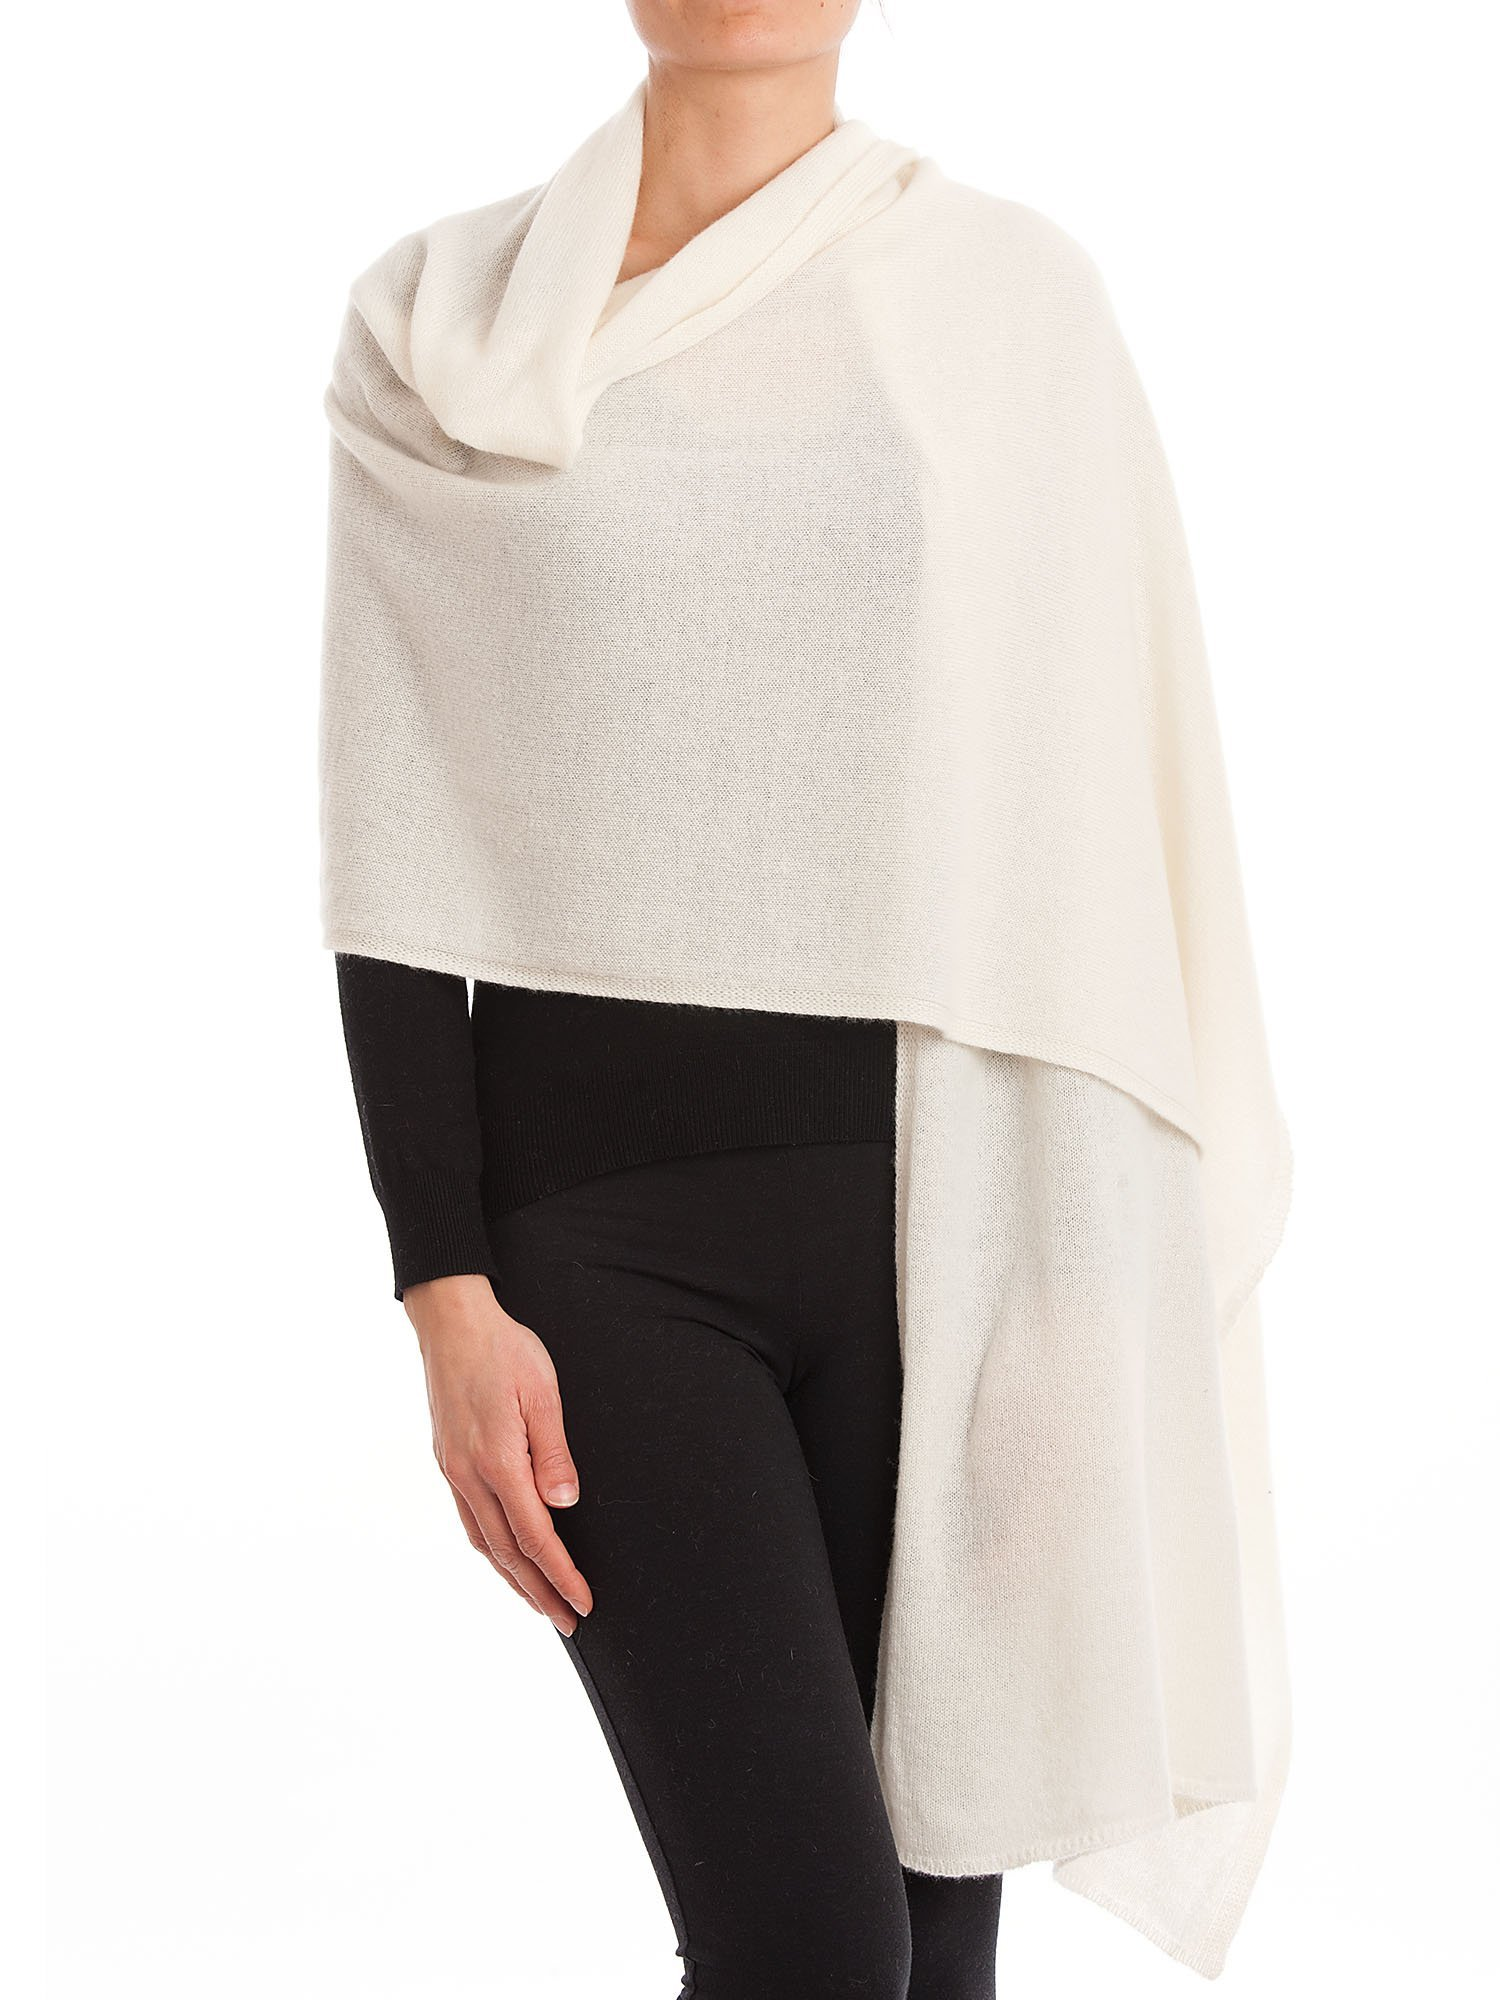 Dalle Piane Cashmere - Stole 100% cashmere - Made in Italy, Color: Cream, One size